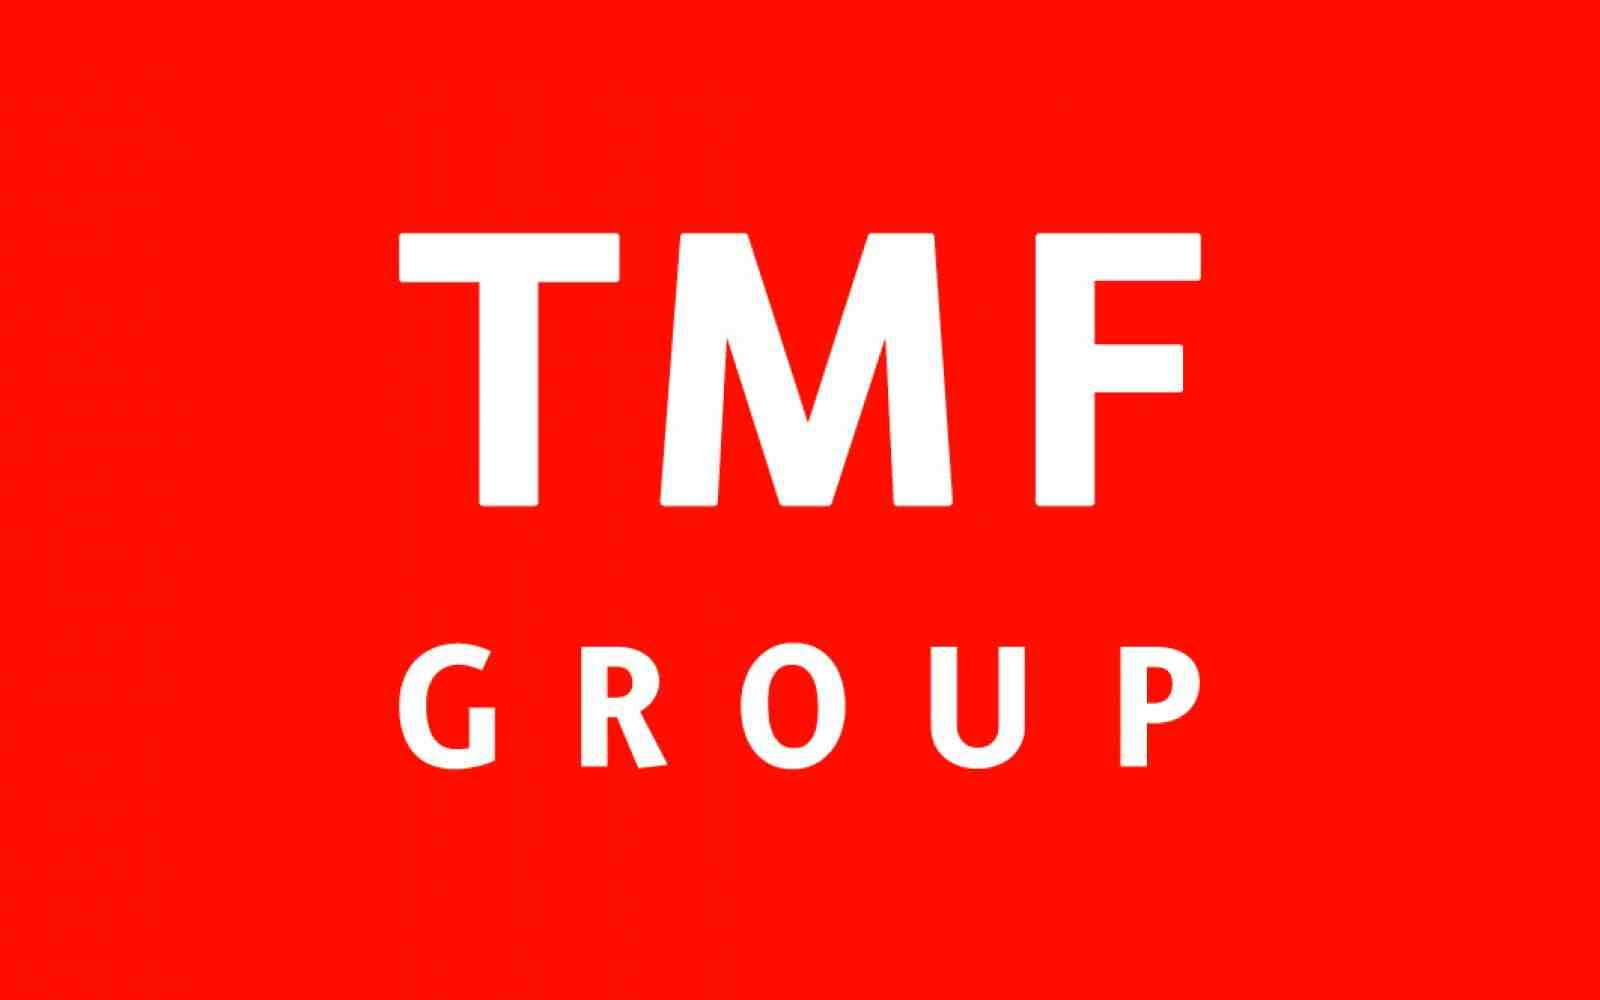 TMF Group logo; Bright red square; center of it are the capital letters in white: TMF, below are smaller capital letters in white: GROUP.